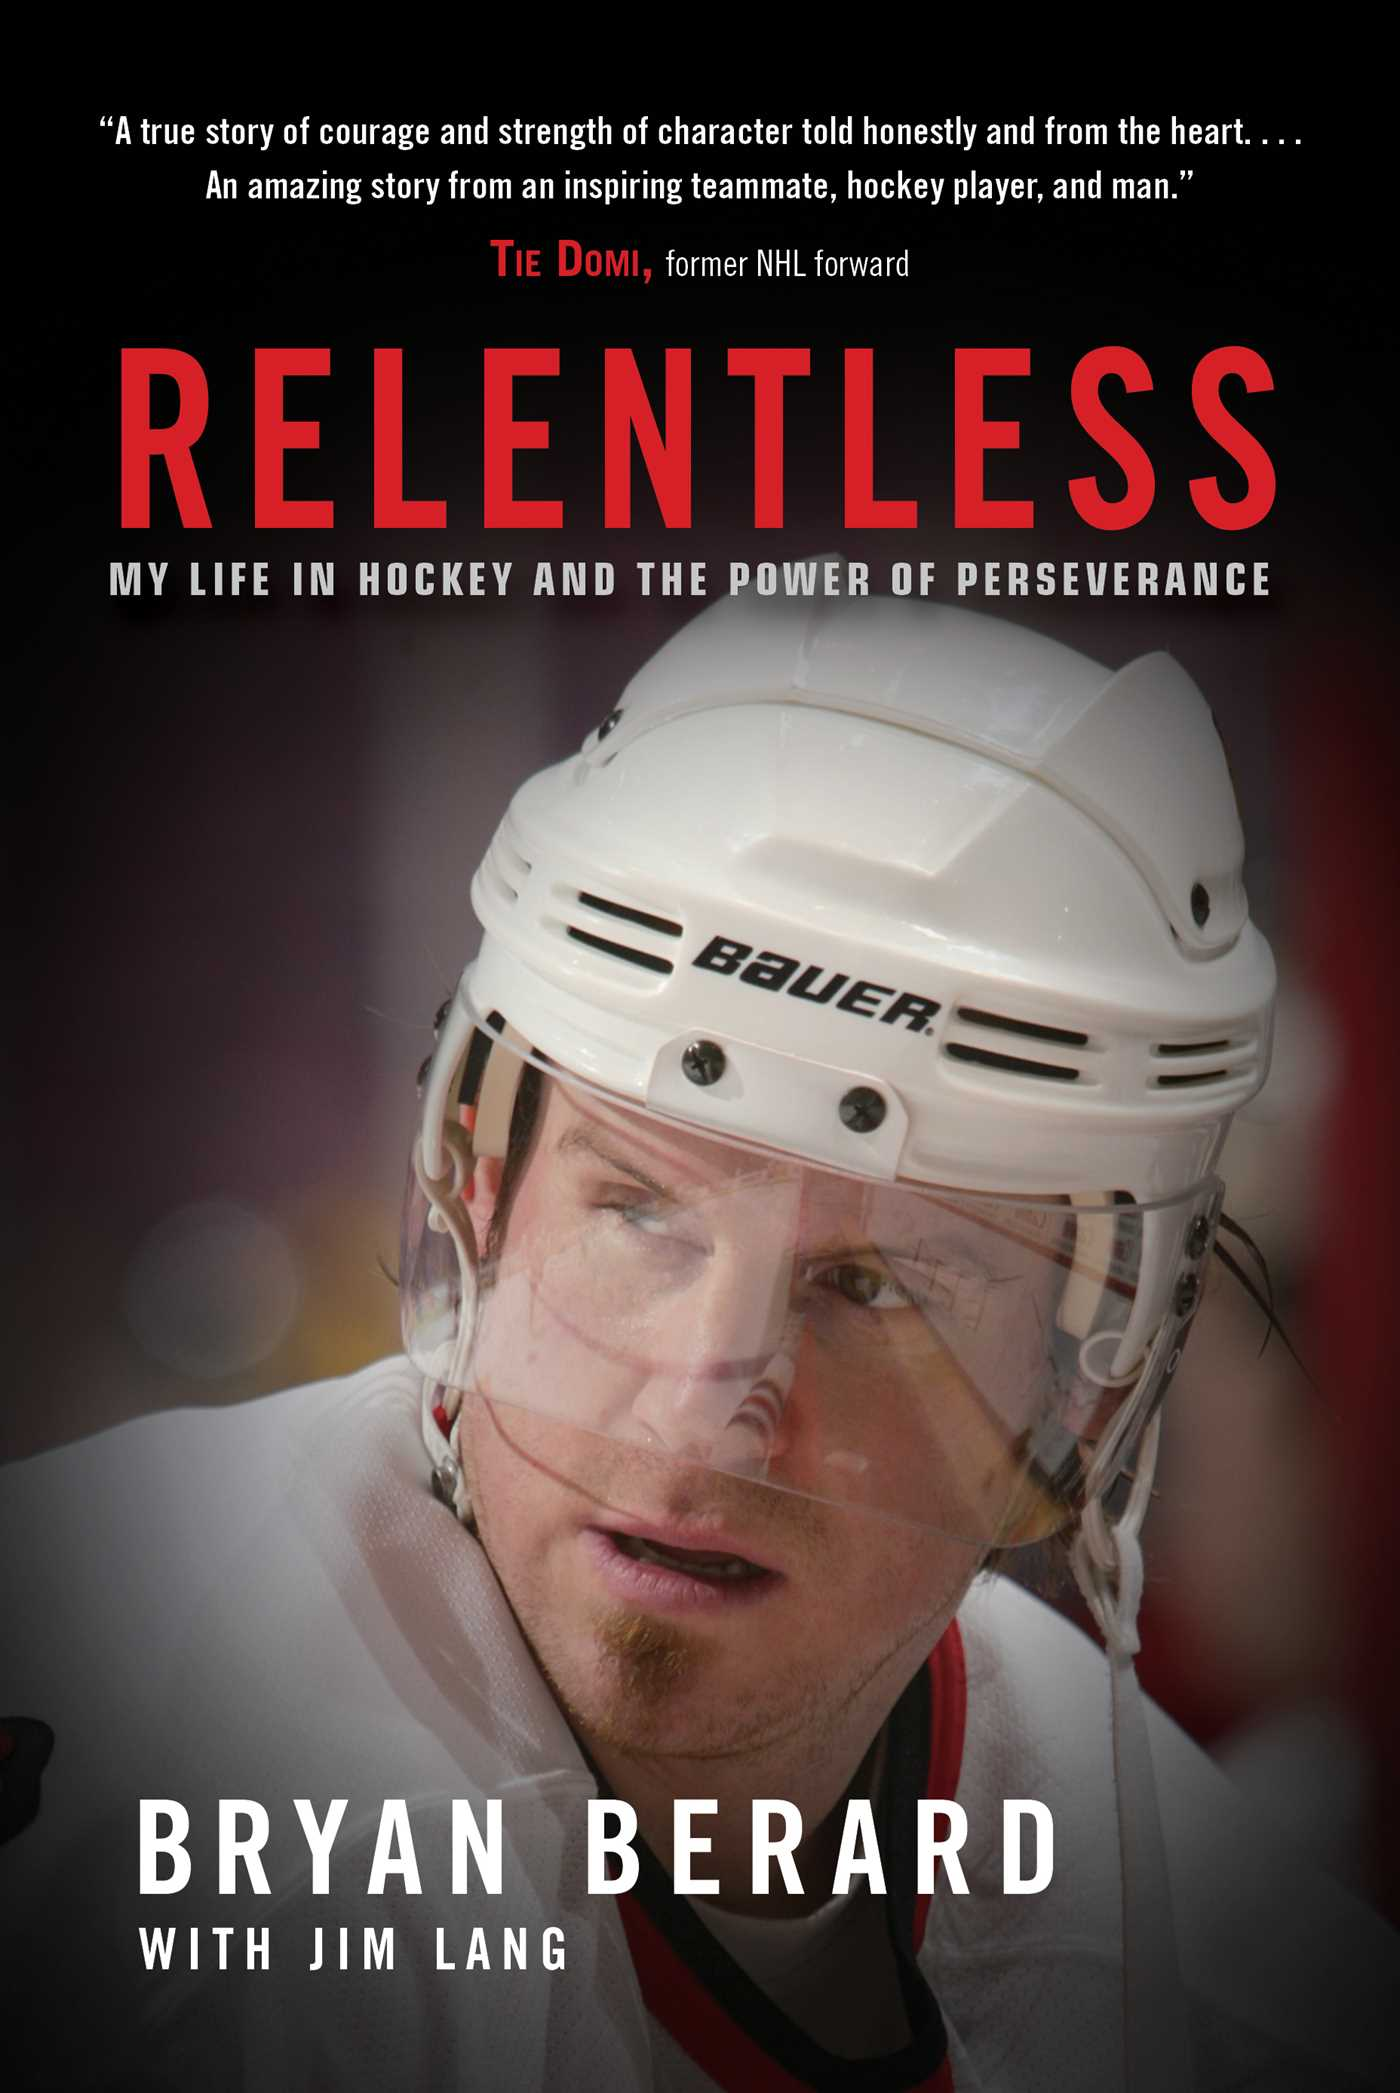 Relentless: My Life in Hockey and the Power of Perseverance